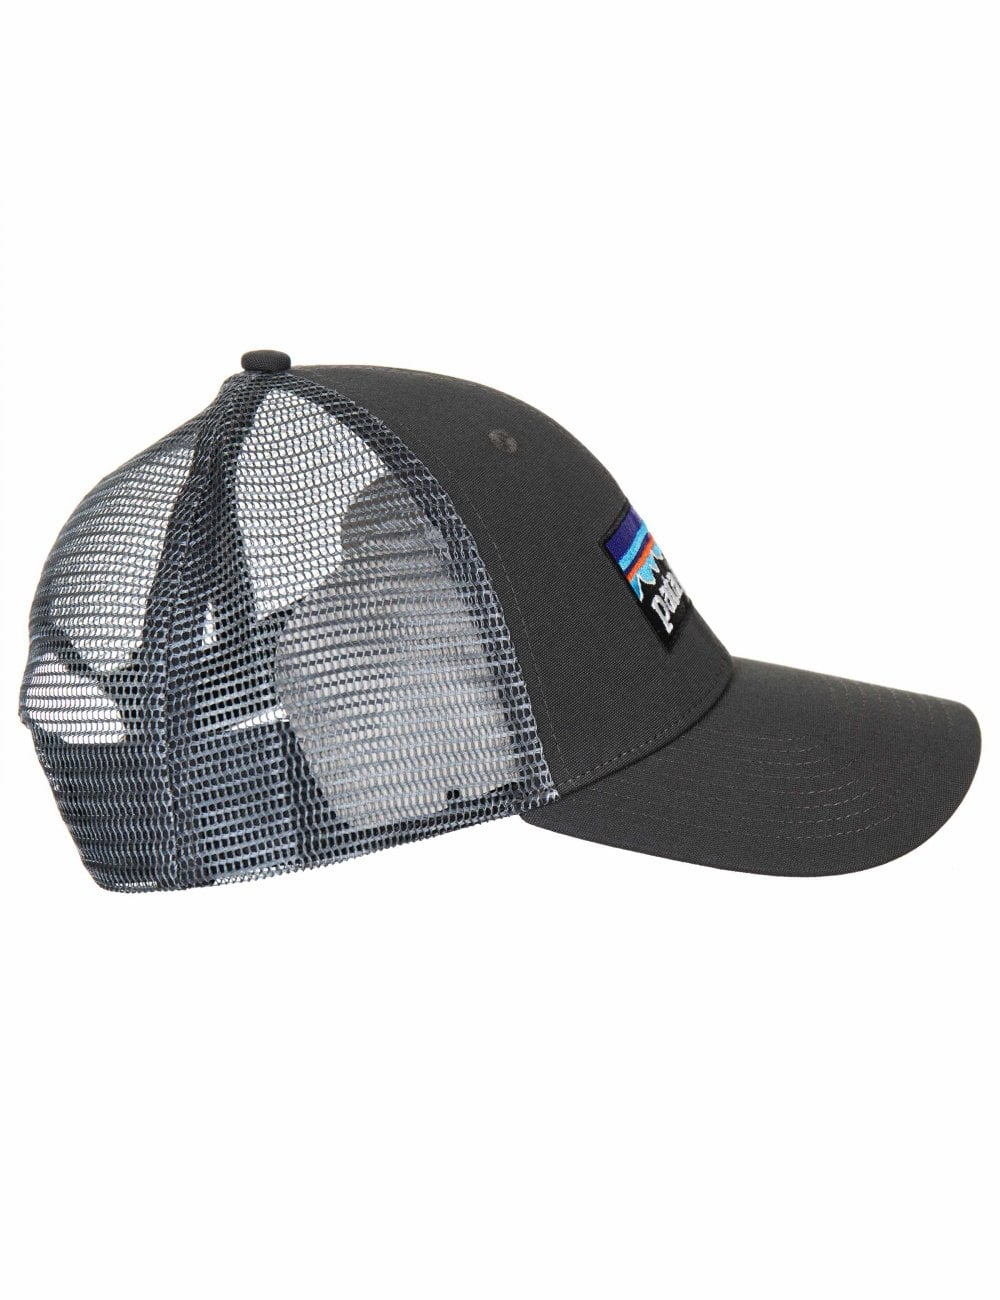 049a95a4 Patagonia P-6 Logo LoPro Trucker Hat - Forge Grey w/Forge Grey ...